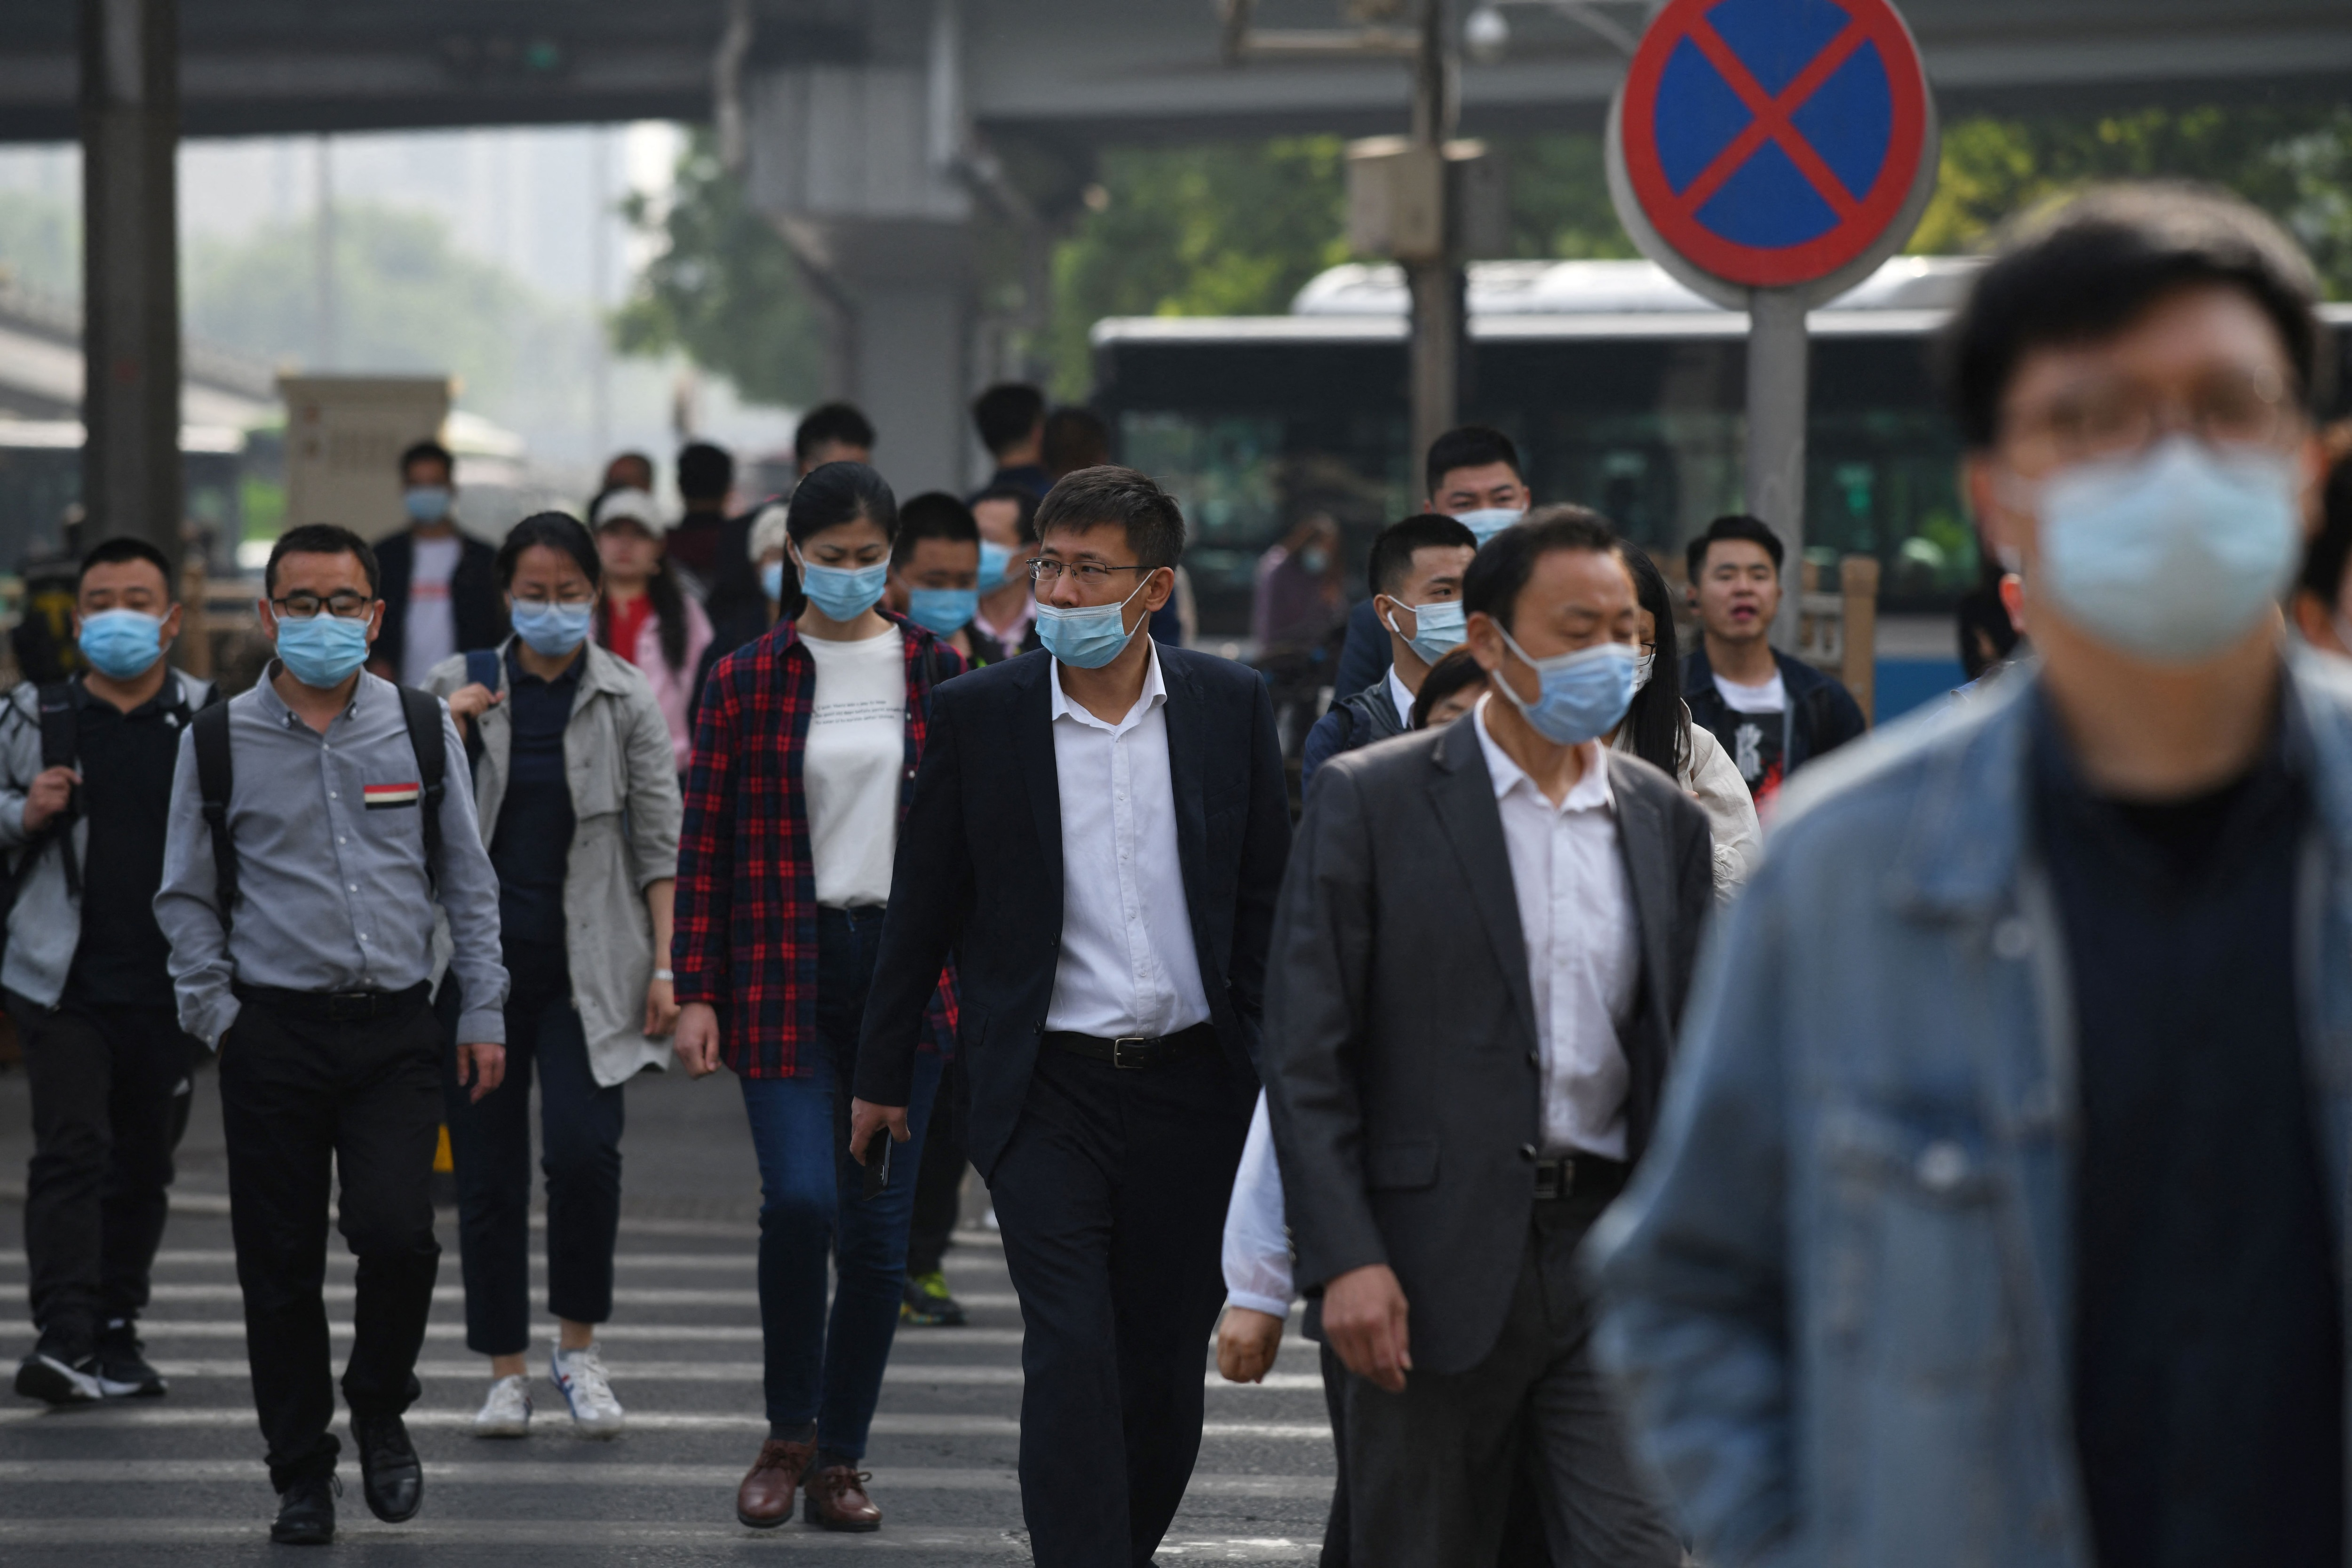 Commuters cross a street during morning rush hour in Beijing on 11 May, 2021.